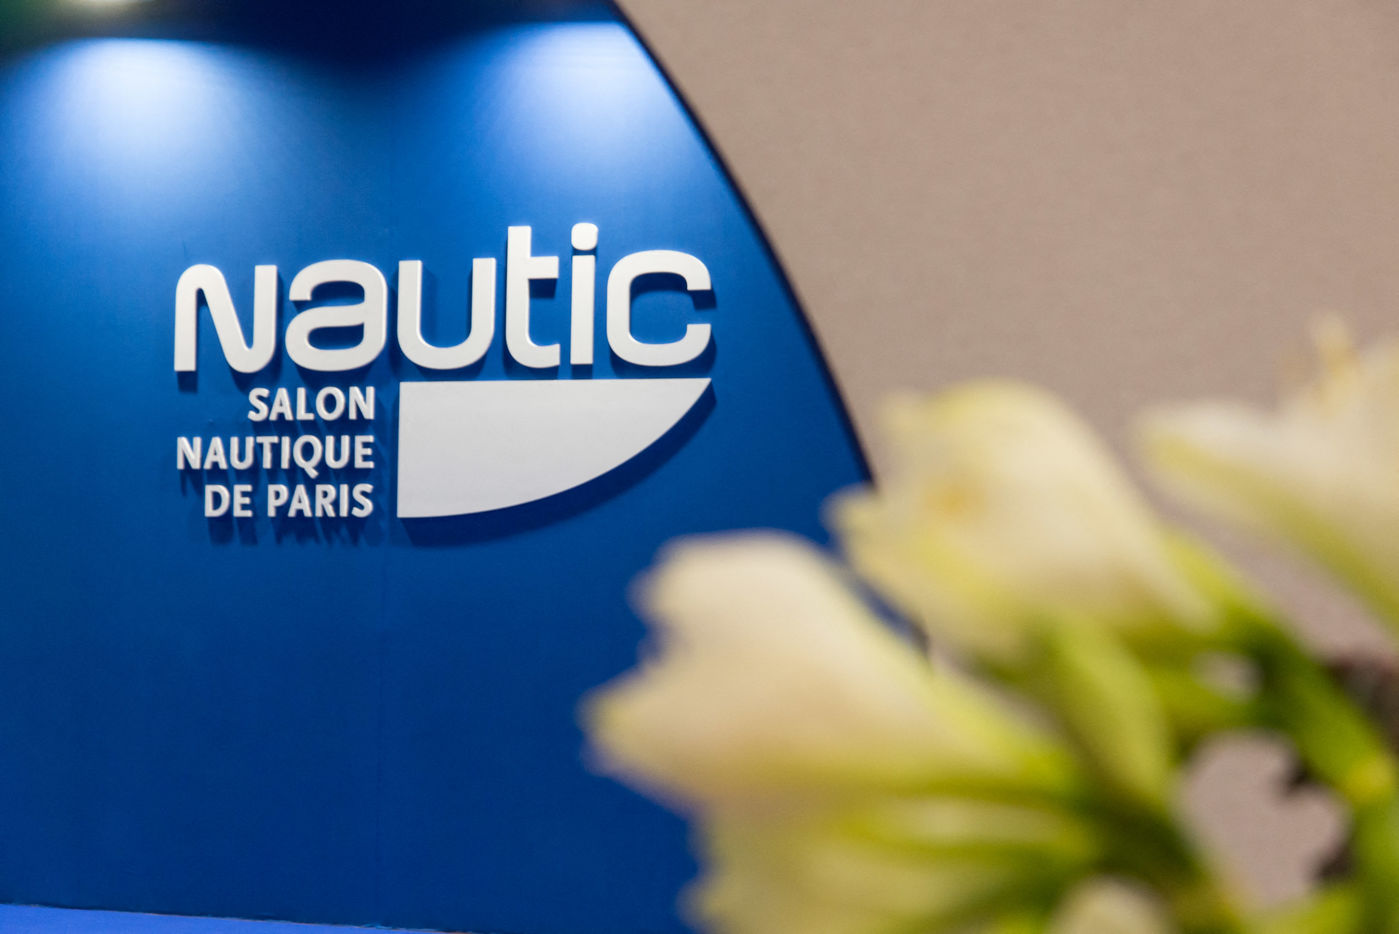 Salon Nautique International De Paris Le Nautic Salon Nautique International De Paris Riccardo Milani